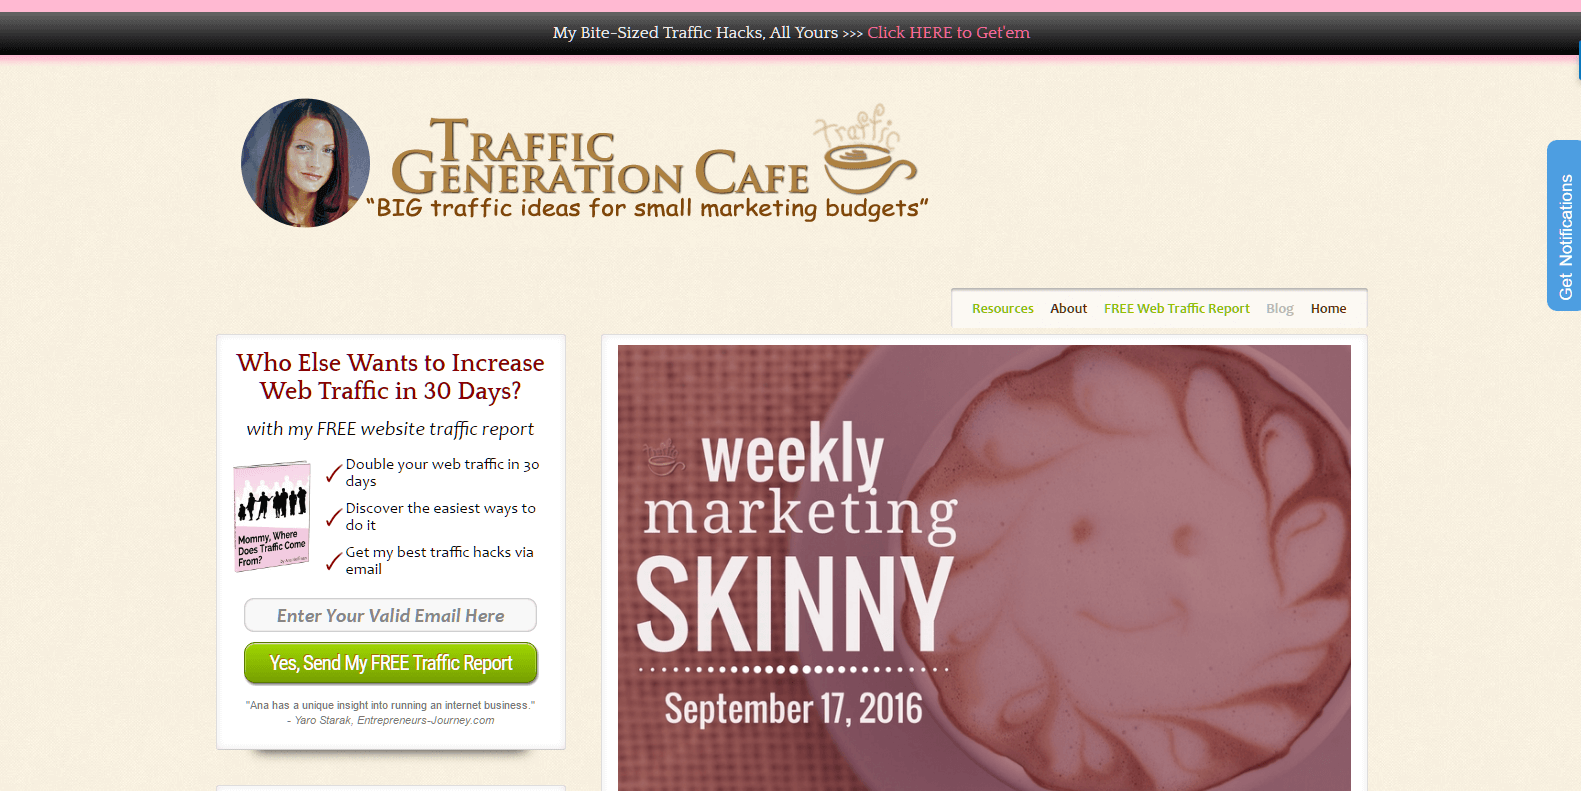 Ana's blog: Traffic Generation Cafe